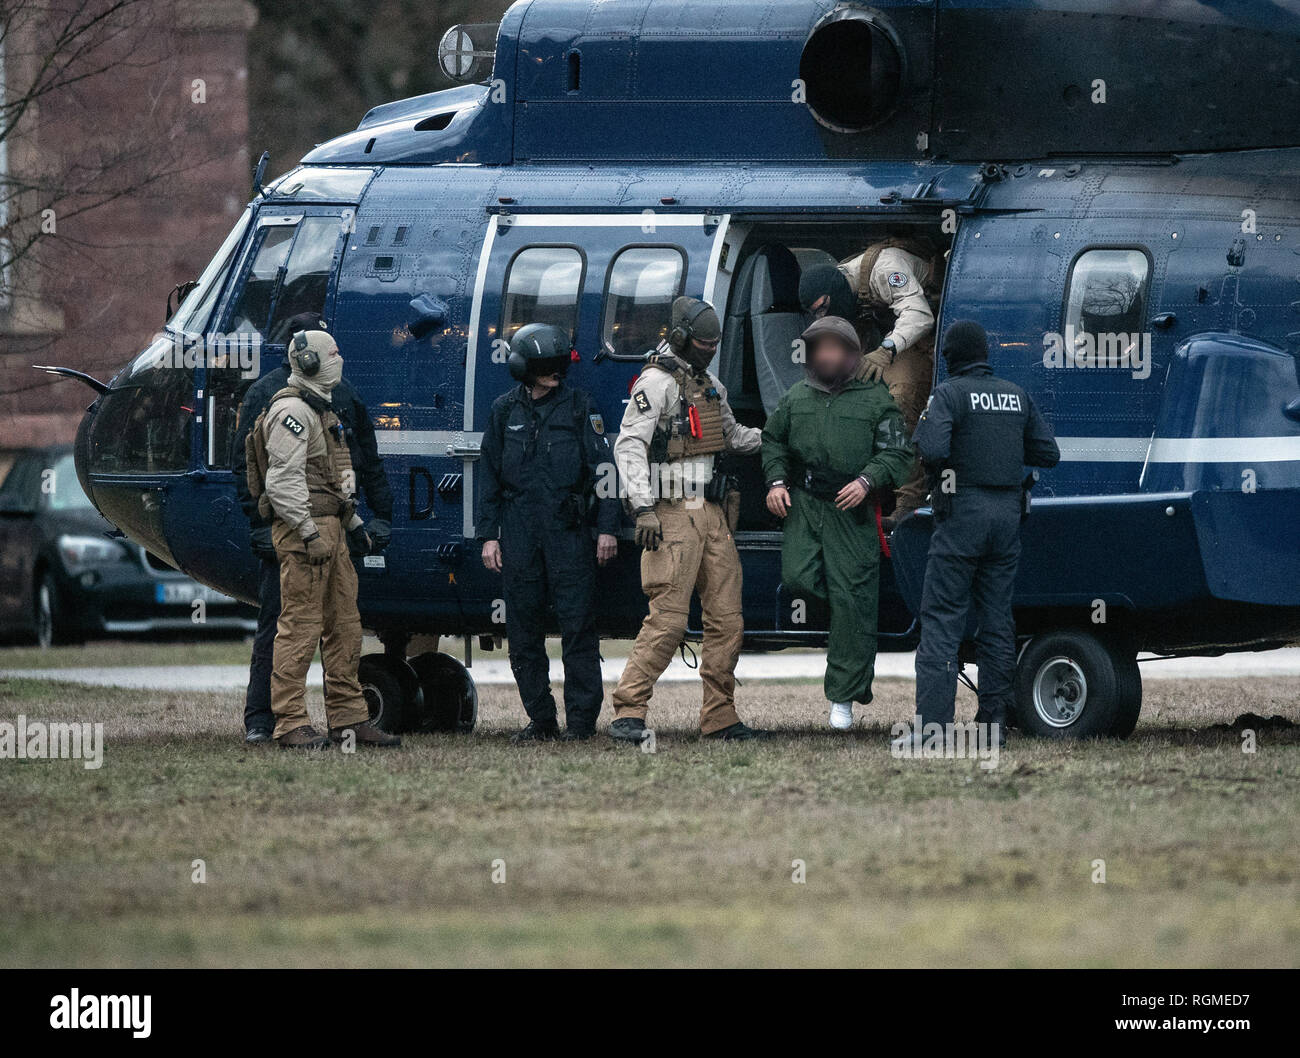 Karlsruhe, Germany  30th Jan, 2019  Federal police officers are